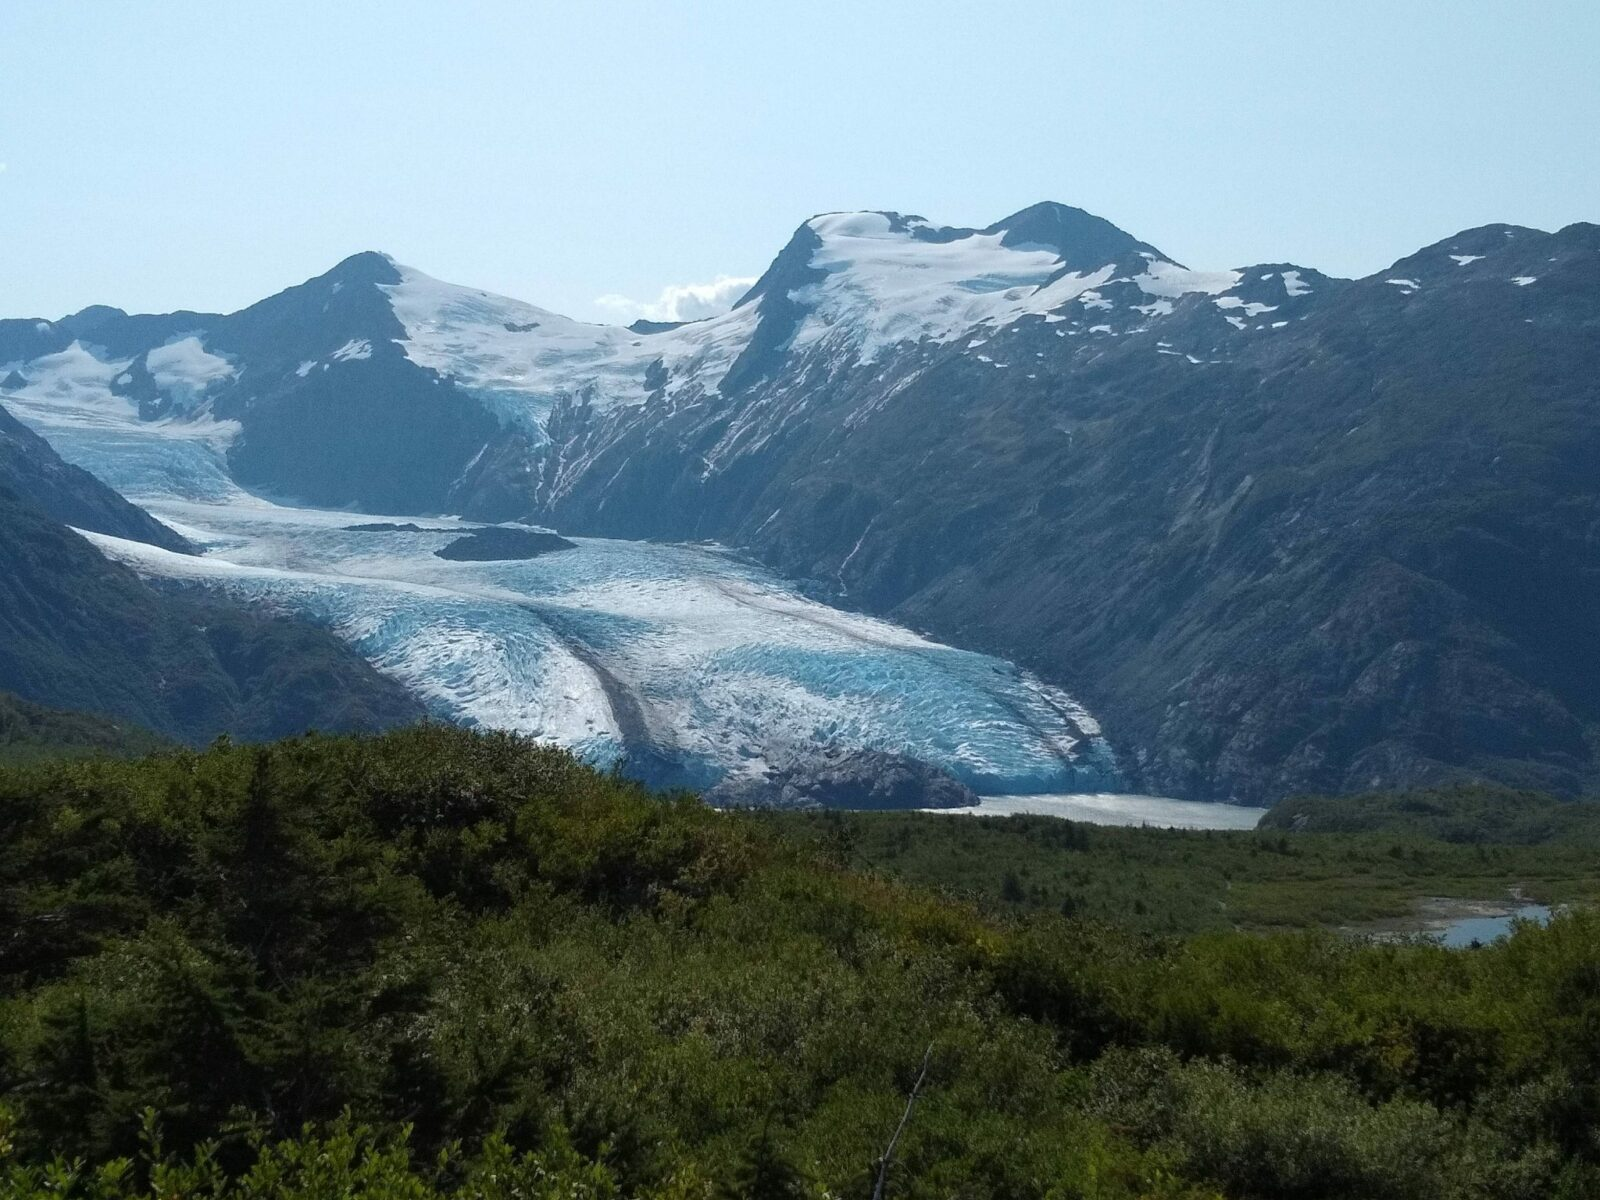 Portage glacier in the middle, meadows in the foreground and mountains in the background against a blue sky